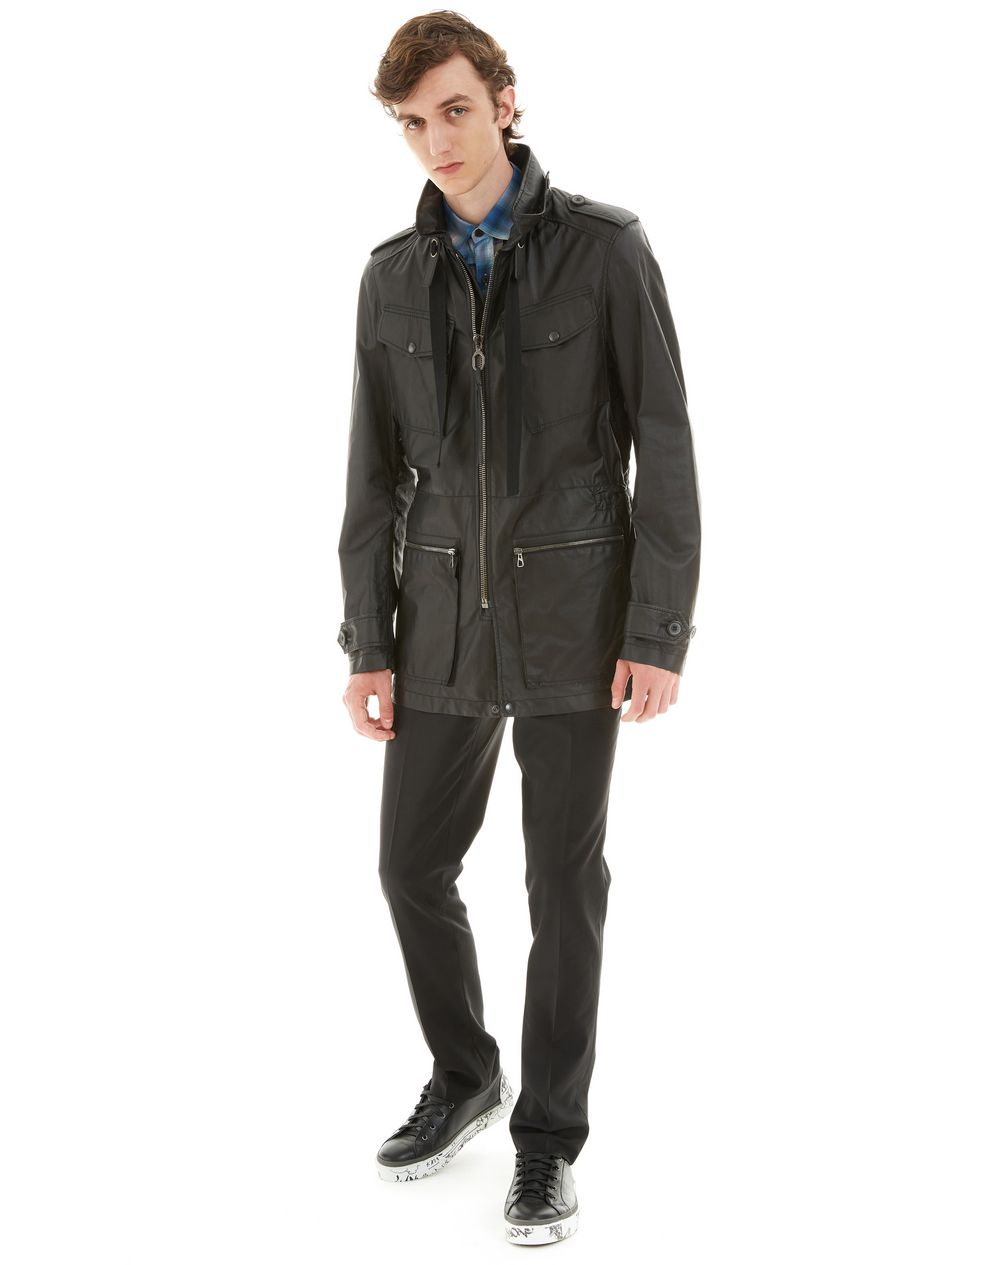 LIGHTWEIGHT SAFARI JACKET - Lanvin